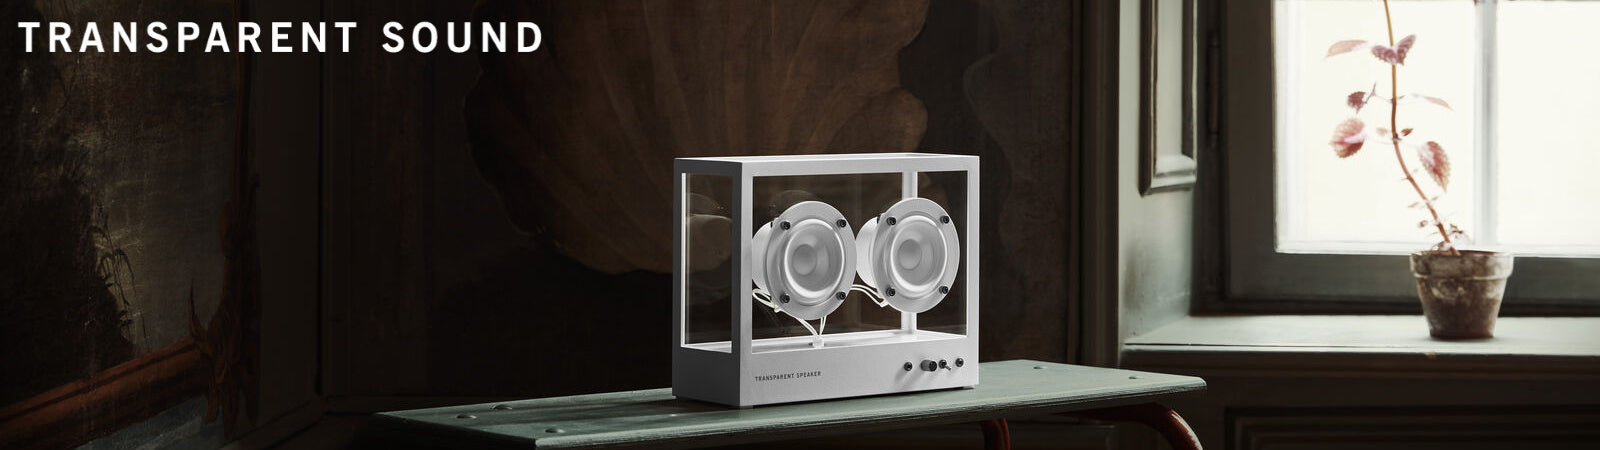 Transparent Sound See Through Speakers available at Sportique.com